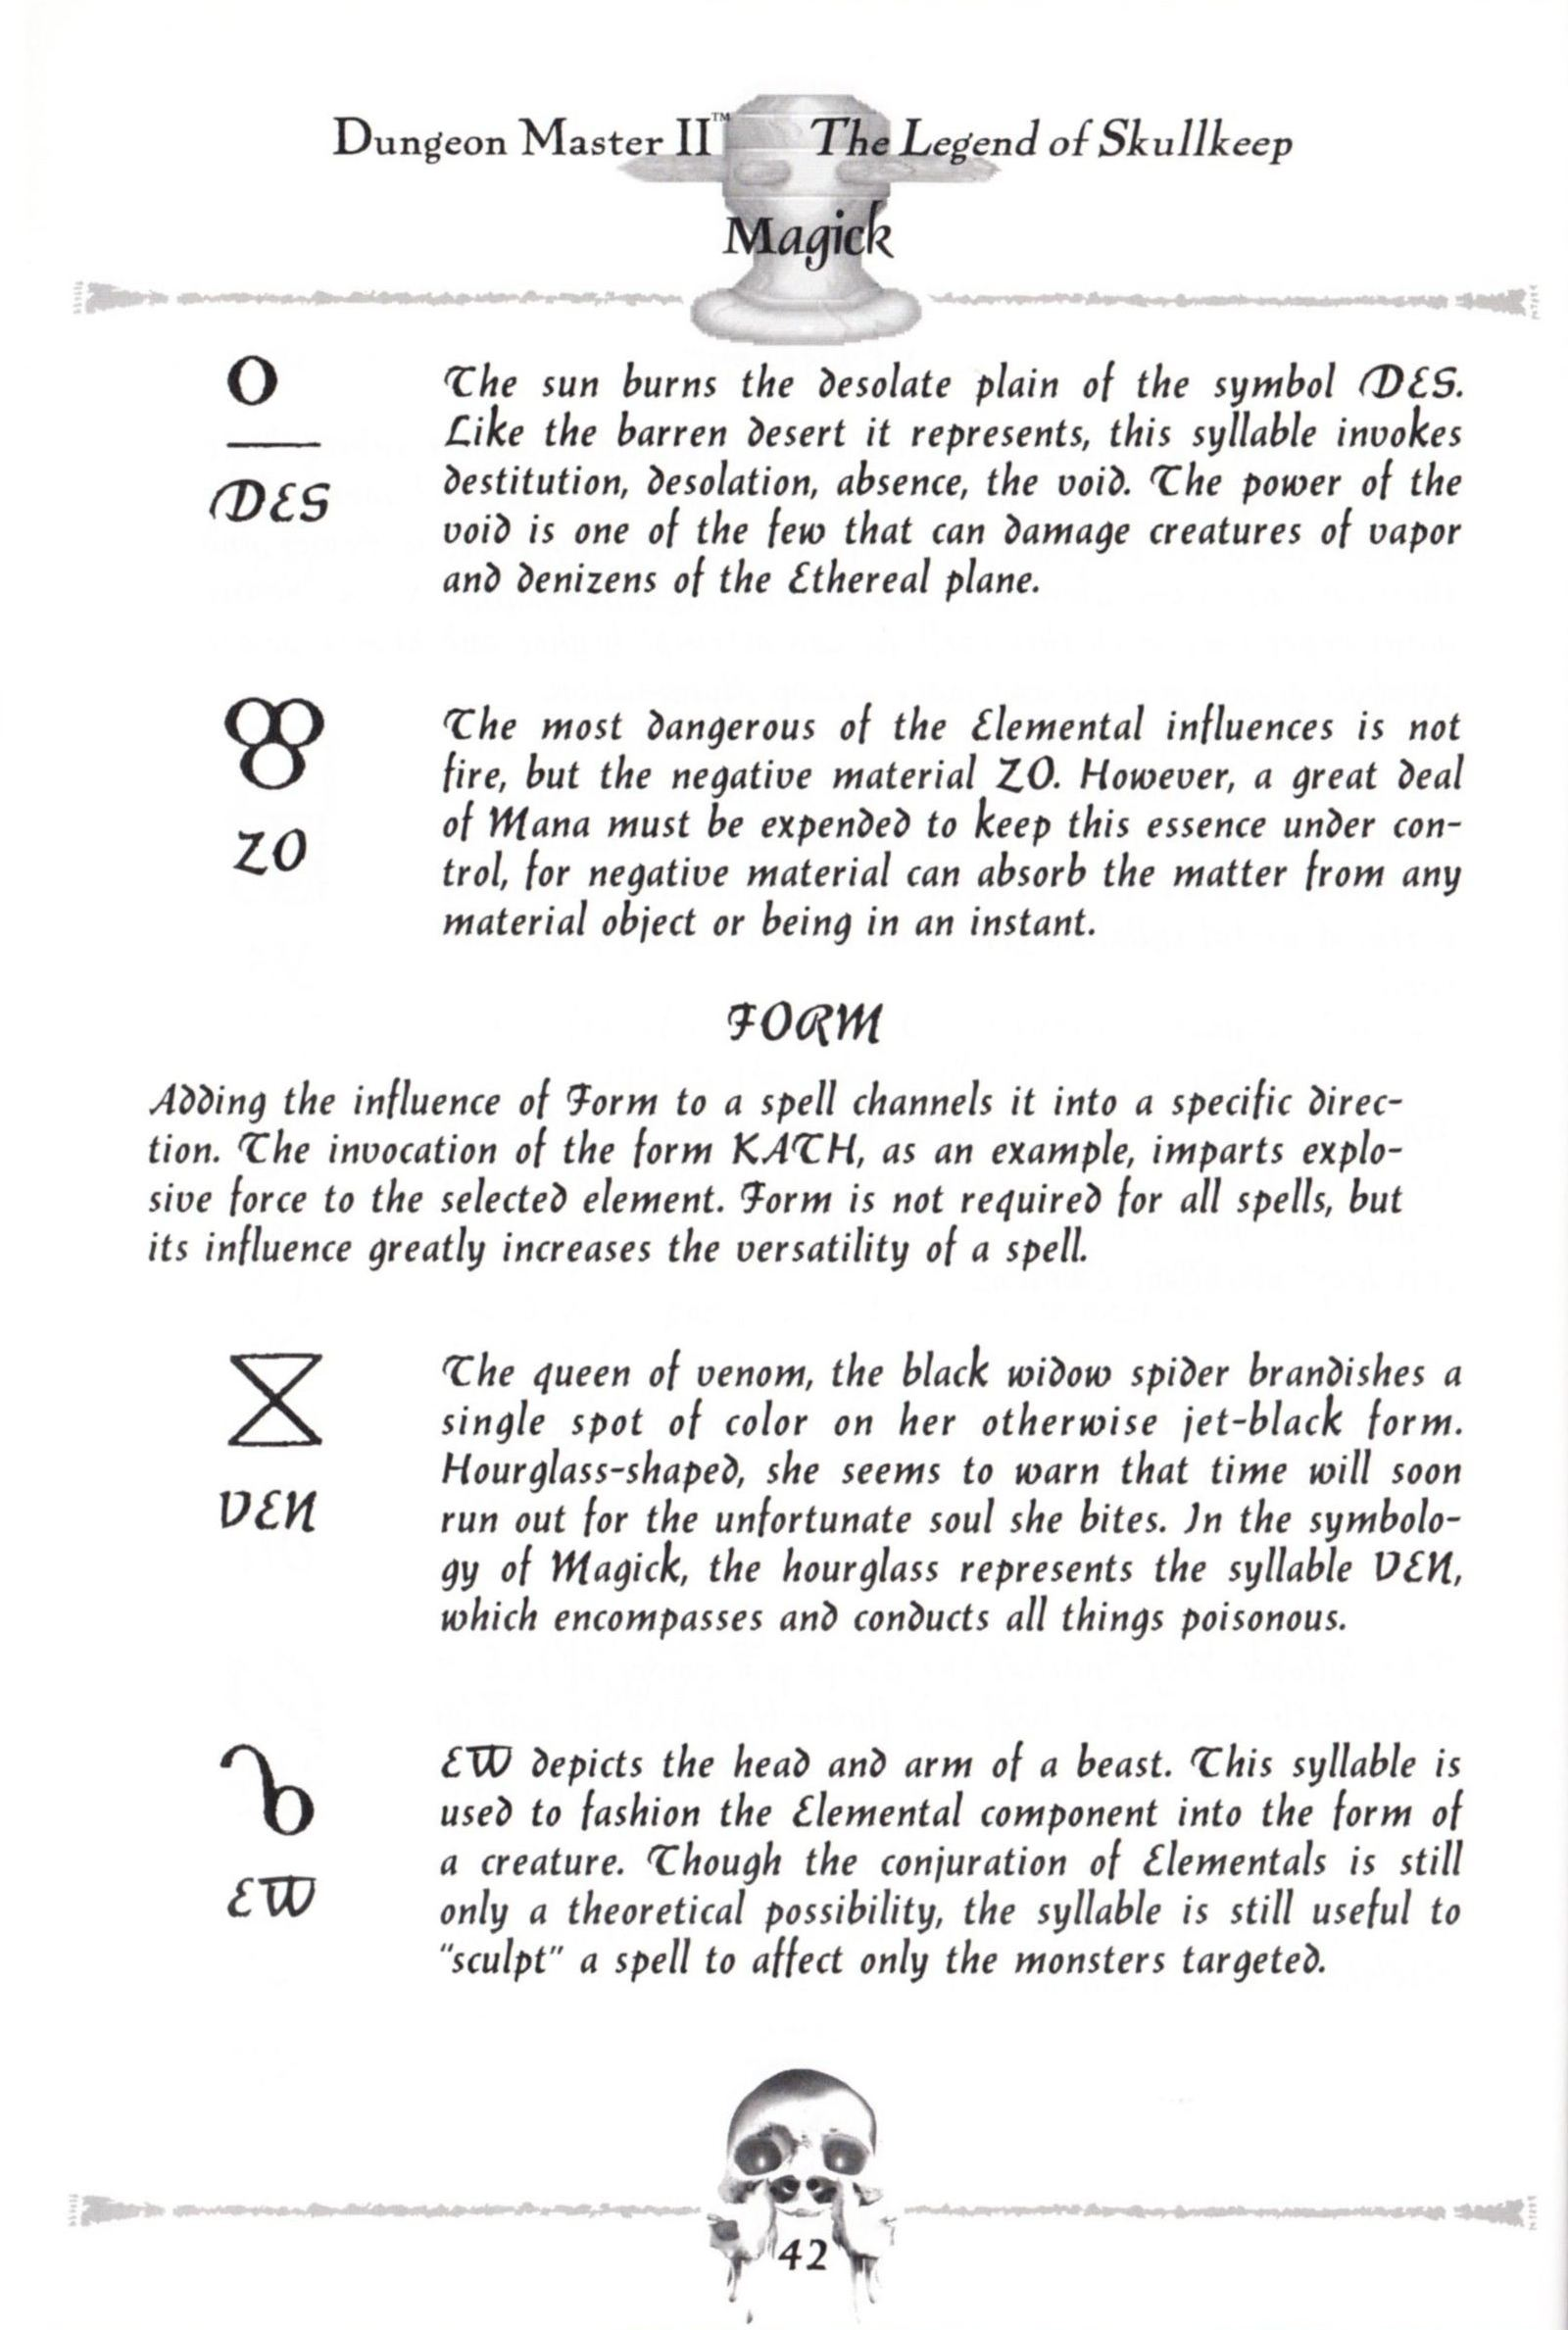 Game - Dungeon Master II - US - Macintosh - Manual - Page 044 - Scan